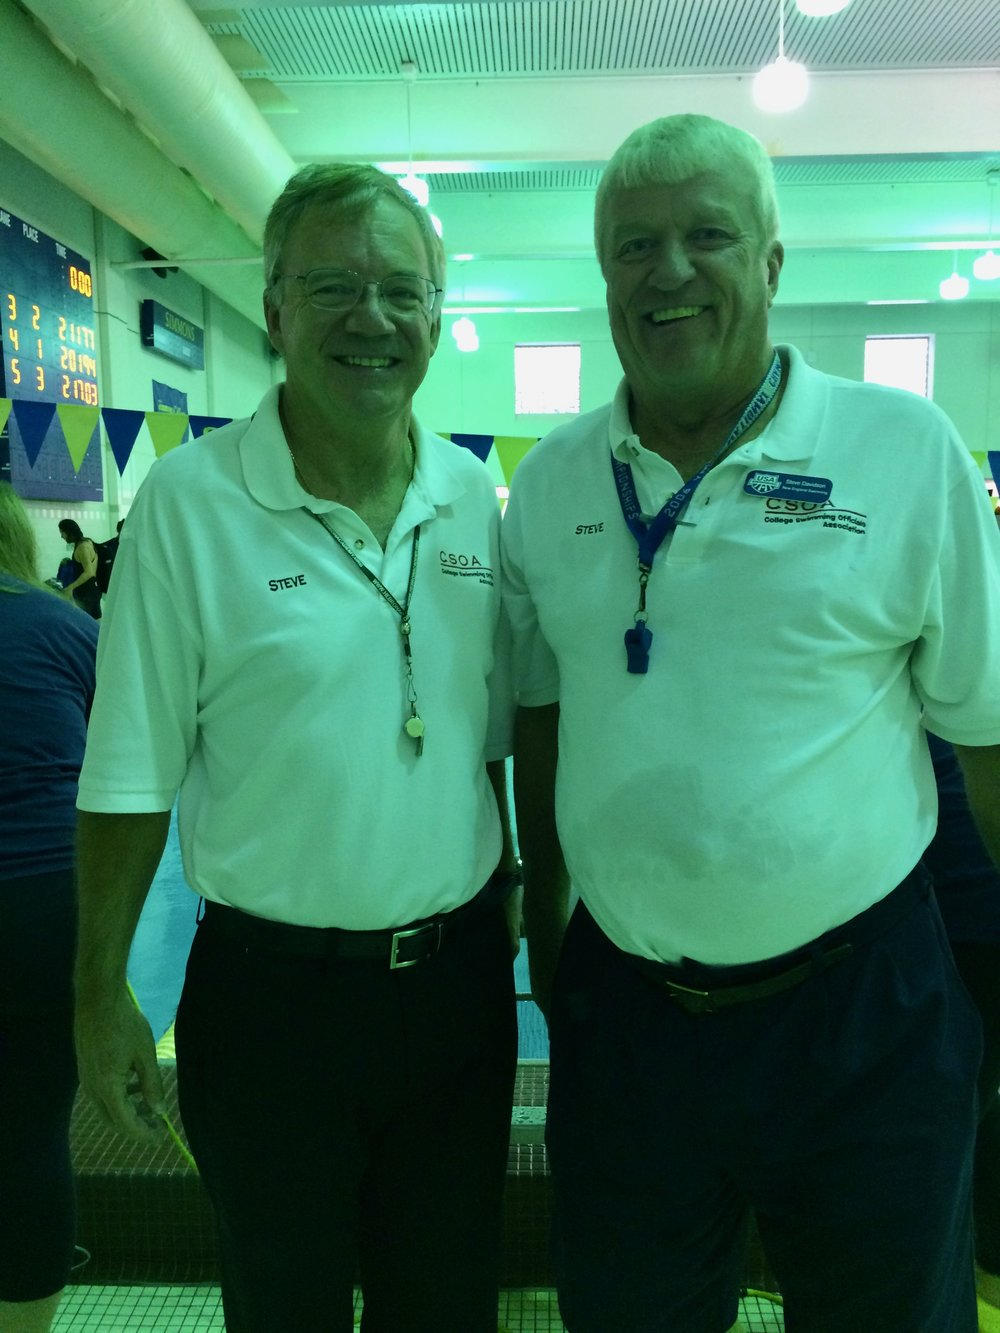 Our meet officials, Steve McAlarney and Steve Davidson